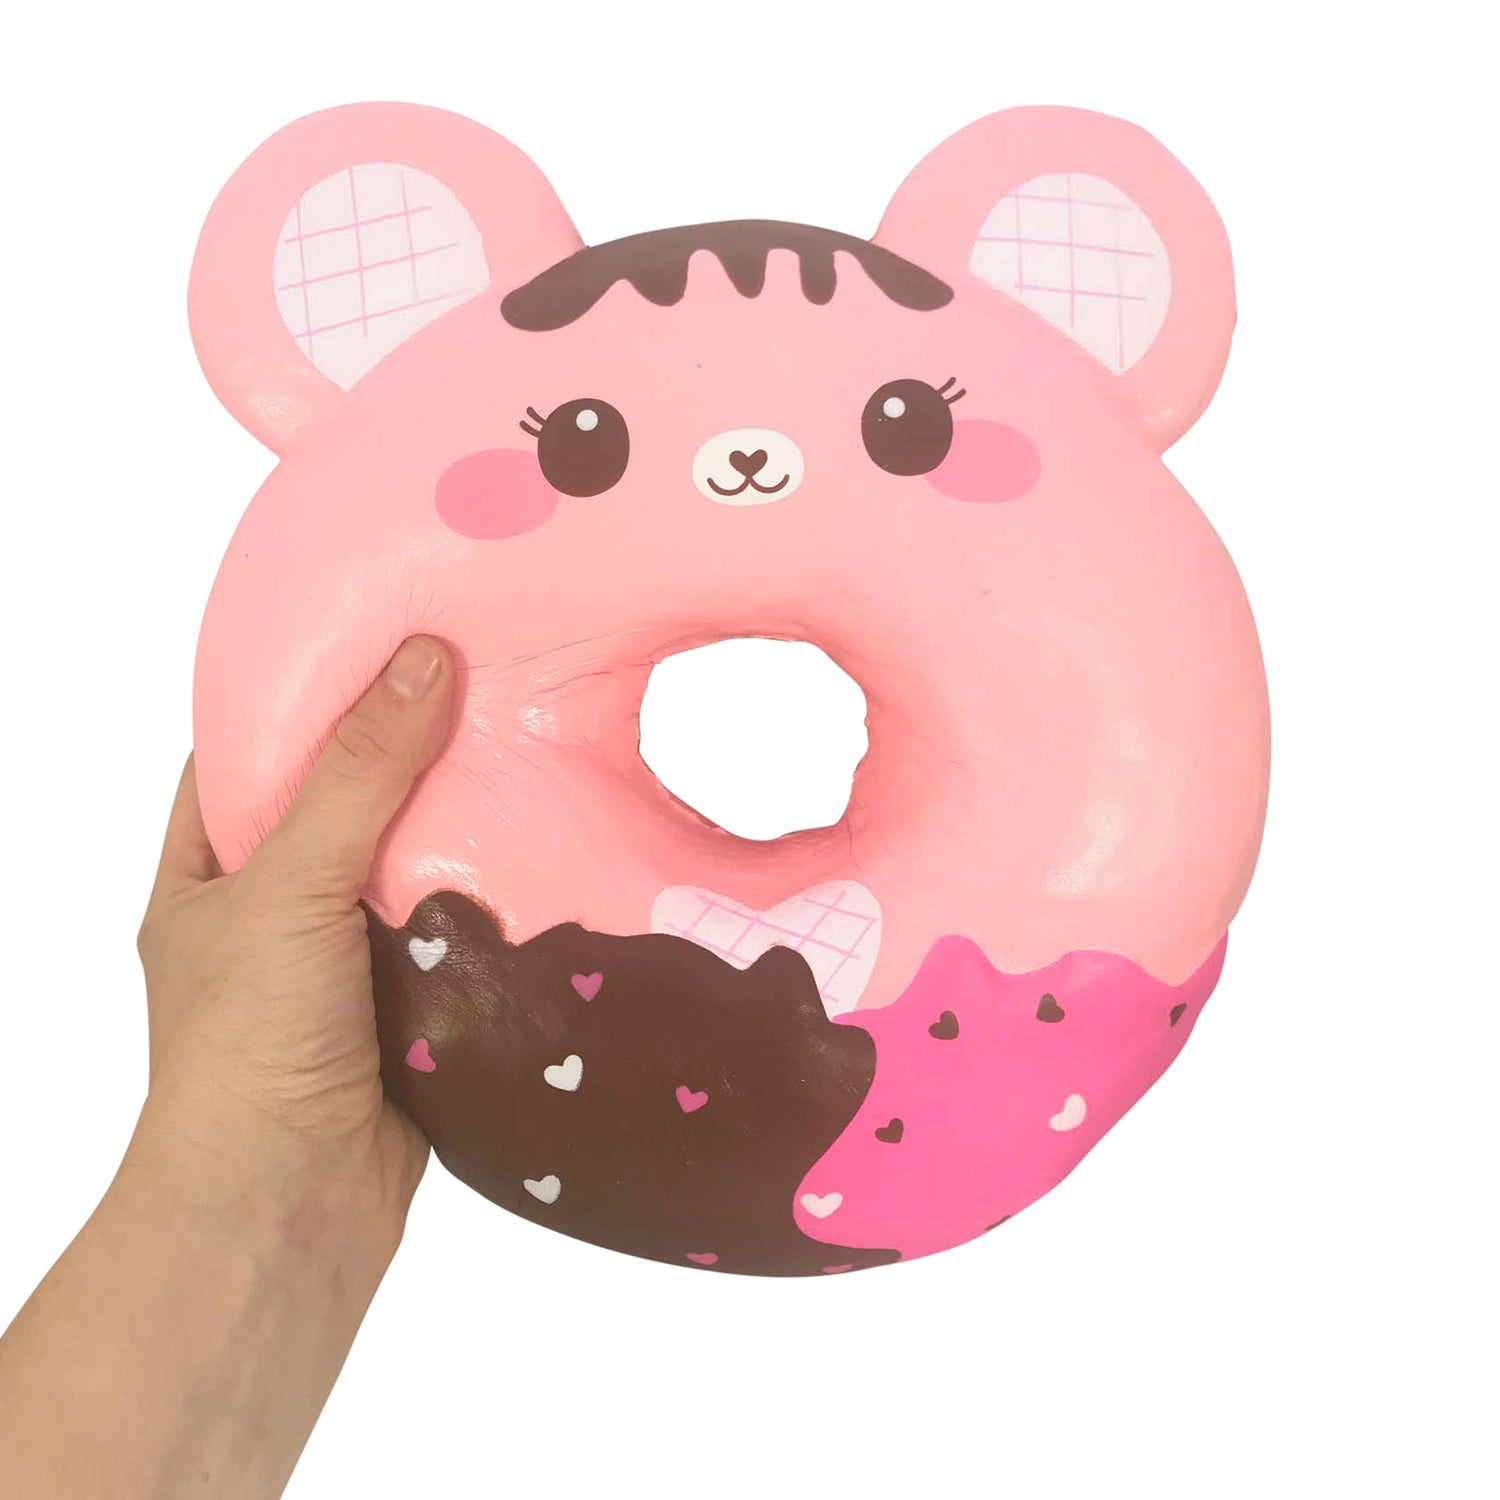 Limited As Is Defected Final Sale Super Humongous Candiibear Donuthuge Jumbo Squishy Enormous